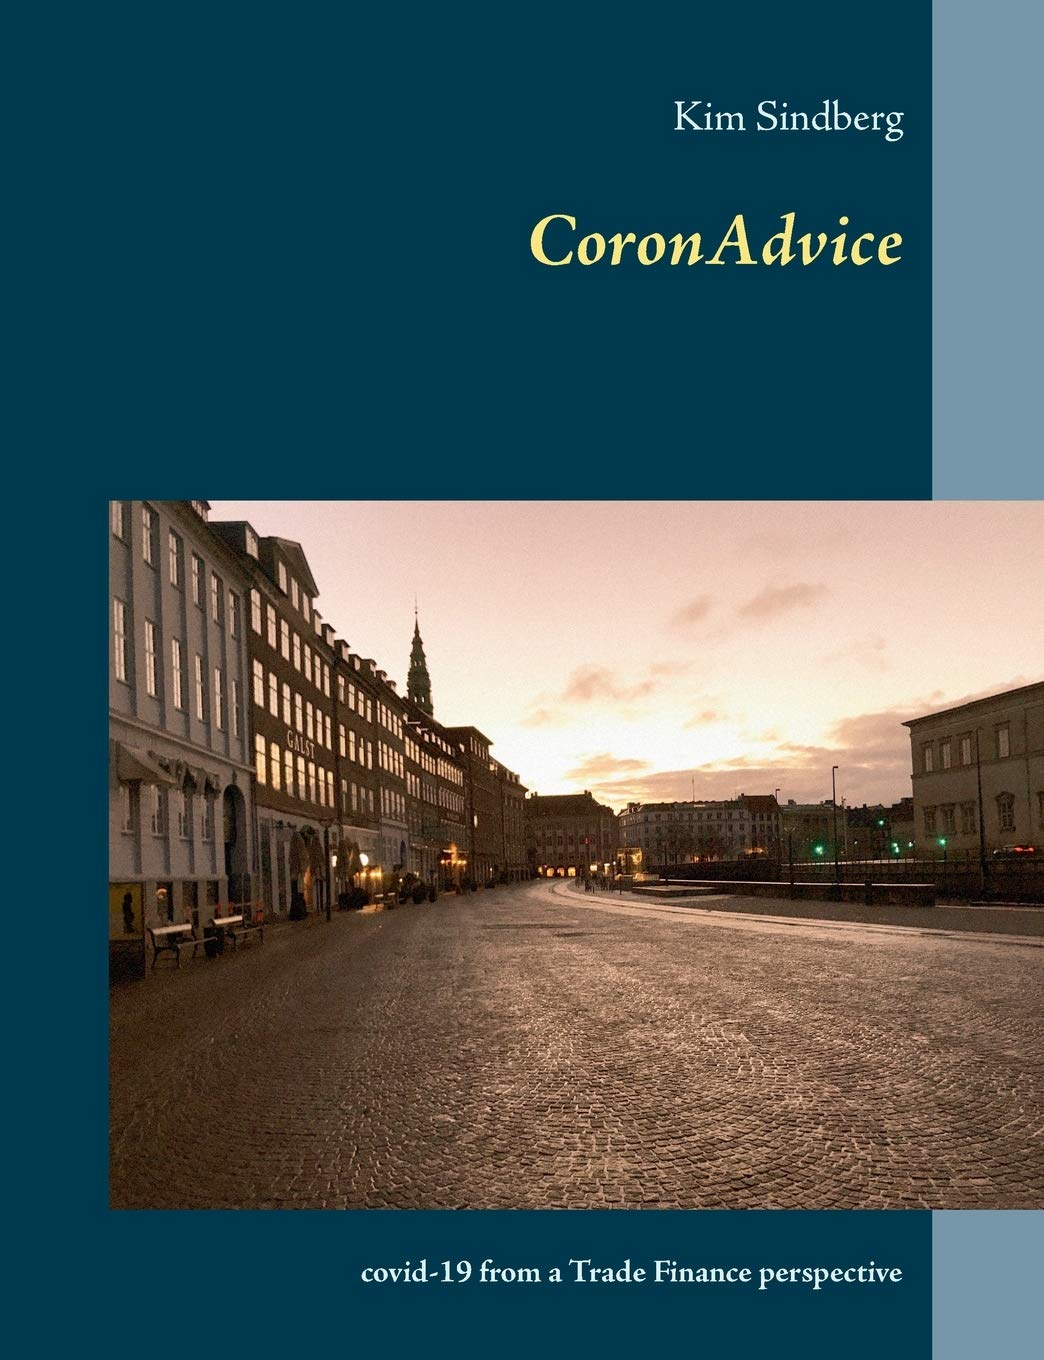 eBook CoronAdvice - Covid-19 from a Trade Finance Perspective - eBSI Export Academy